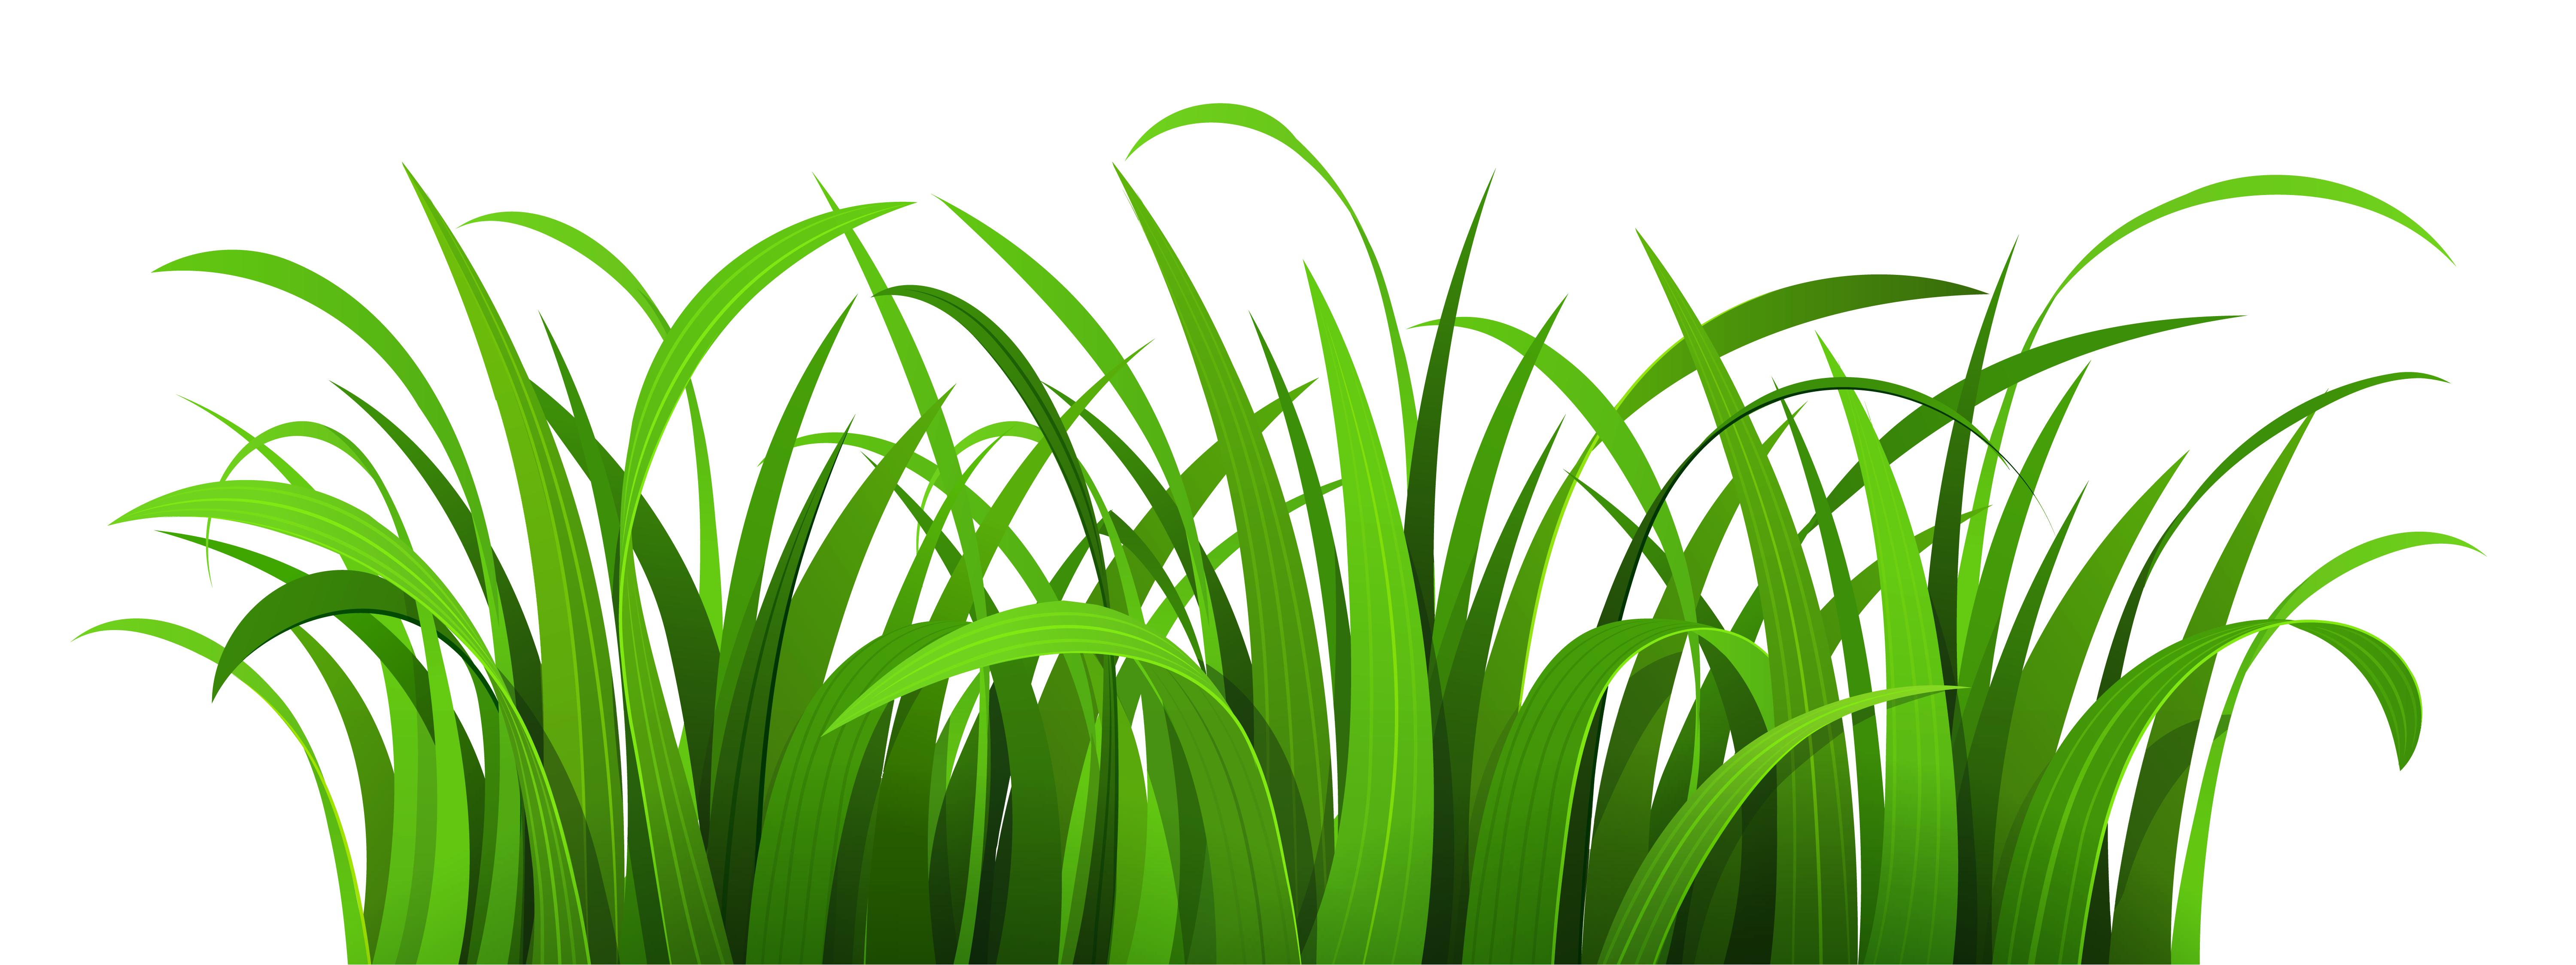 banner royalty free library grass clipart